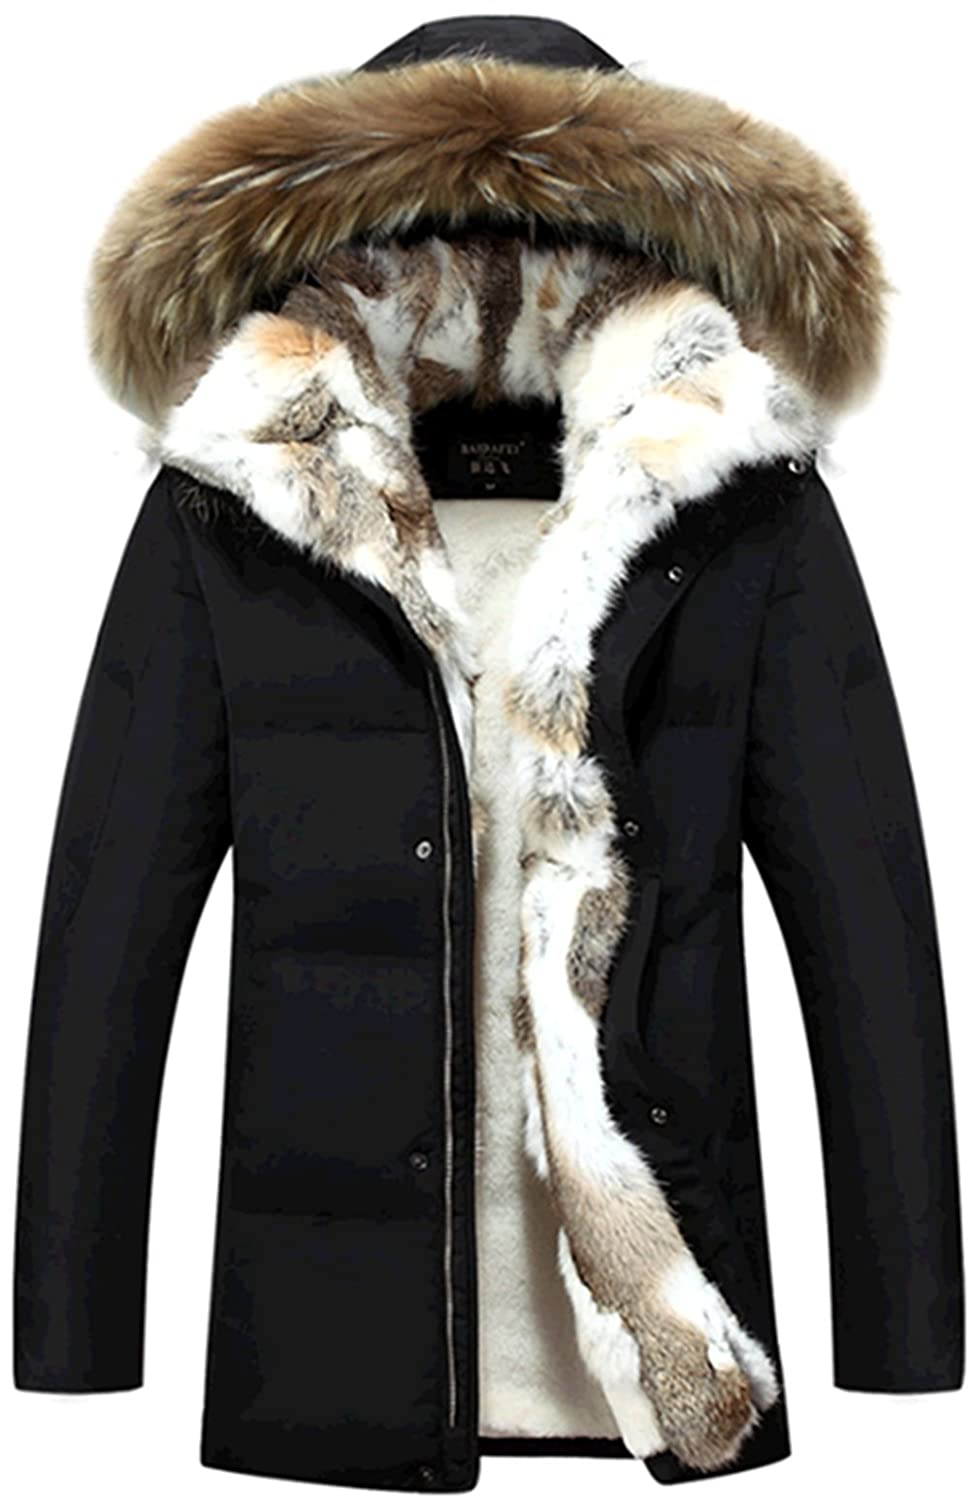 52b8fd3a6 WSAZM Mens Winter Large Size Warmth 90% Down Coat Parka Jackets Fur ...